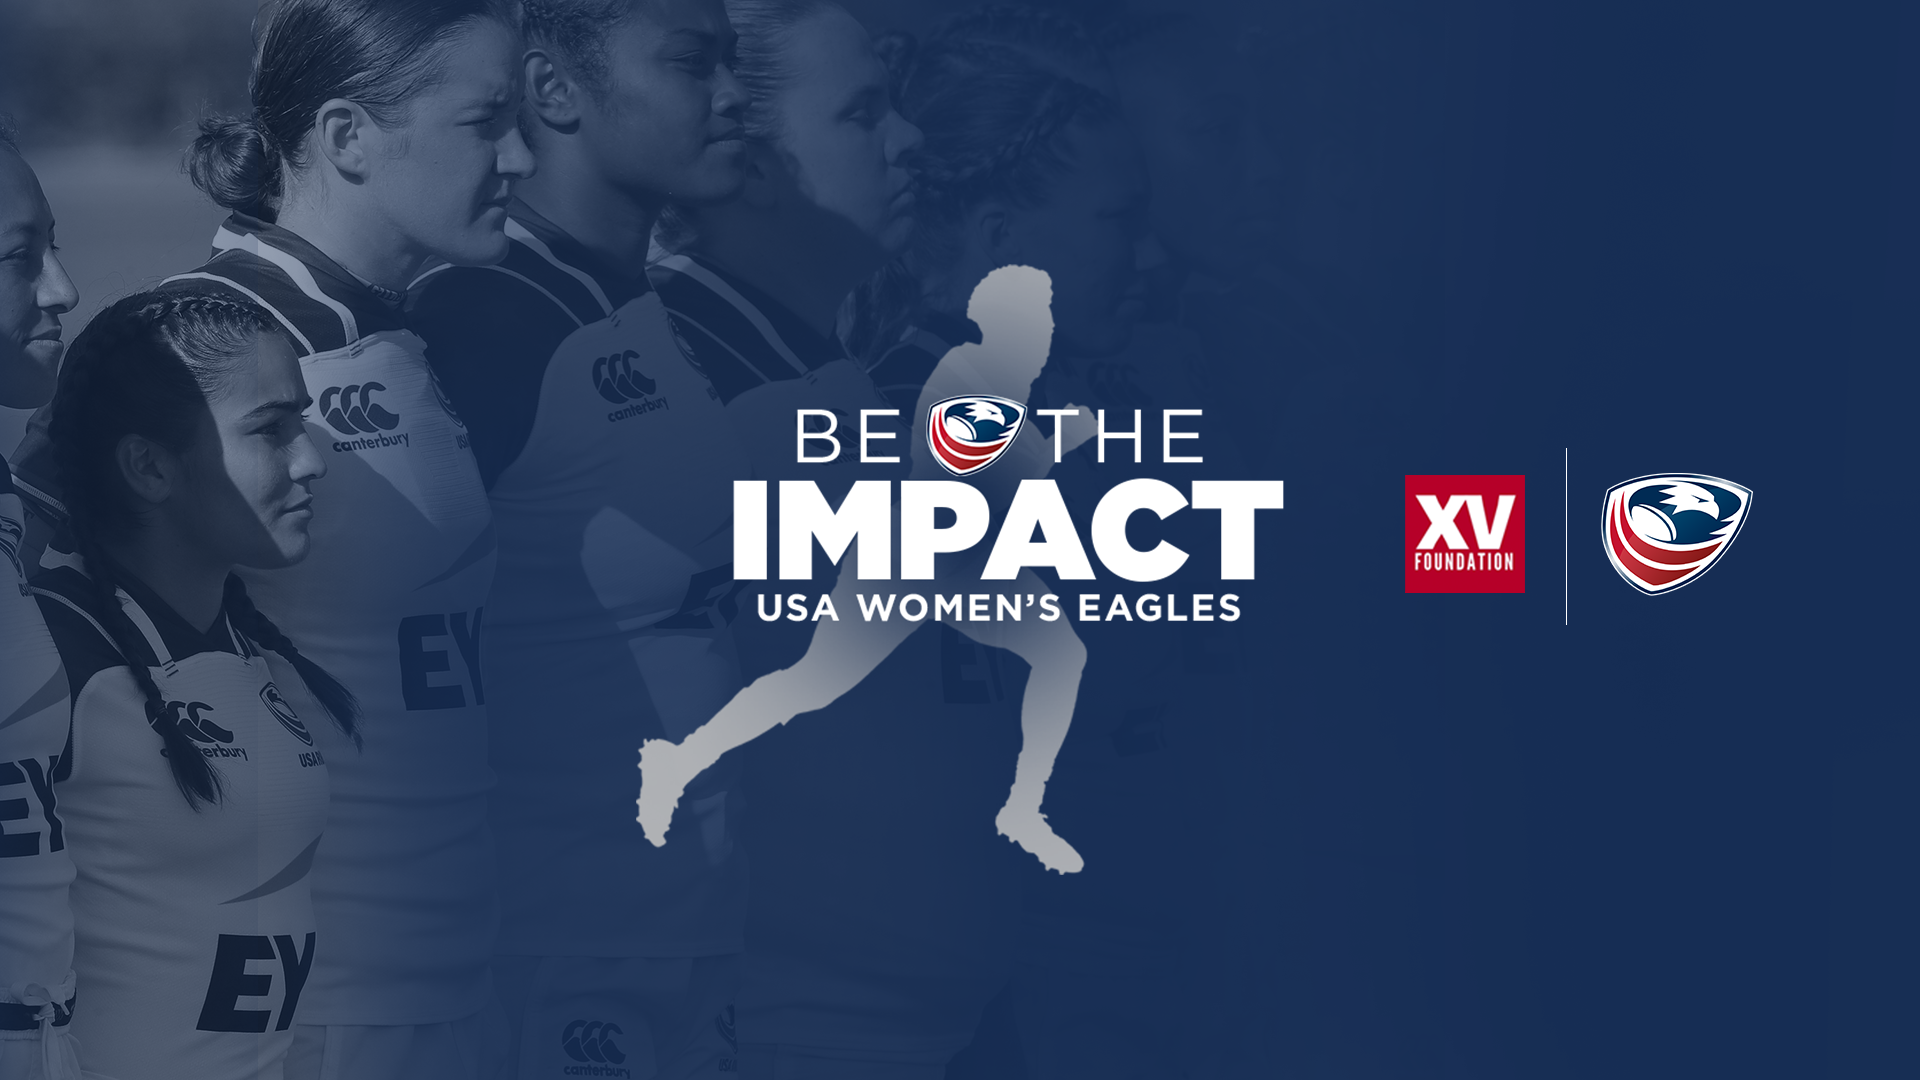 USA Women's Eagles launch 'Be The Impact' initiative to  establish bedrock for XVs program